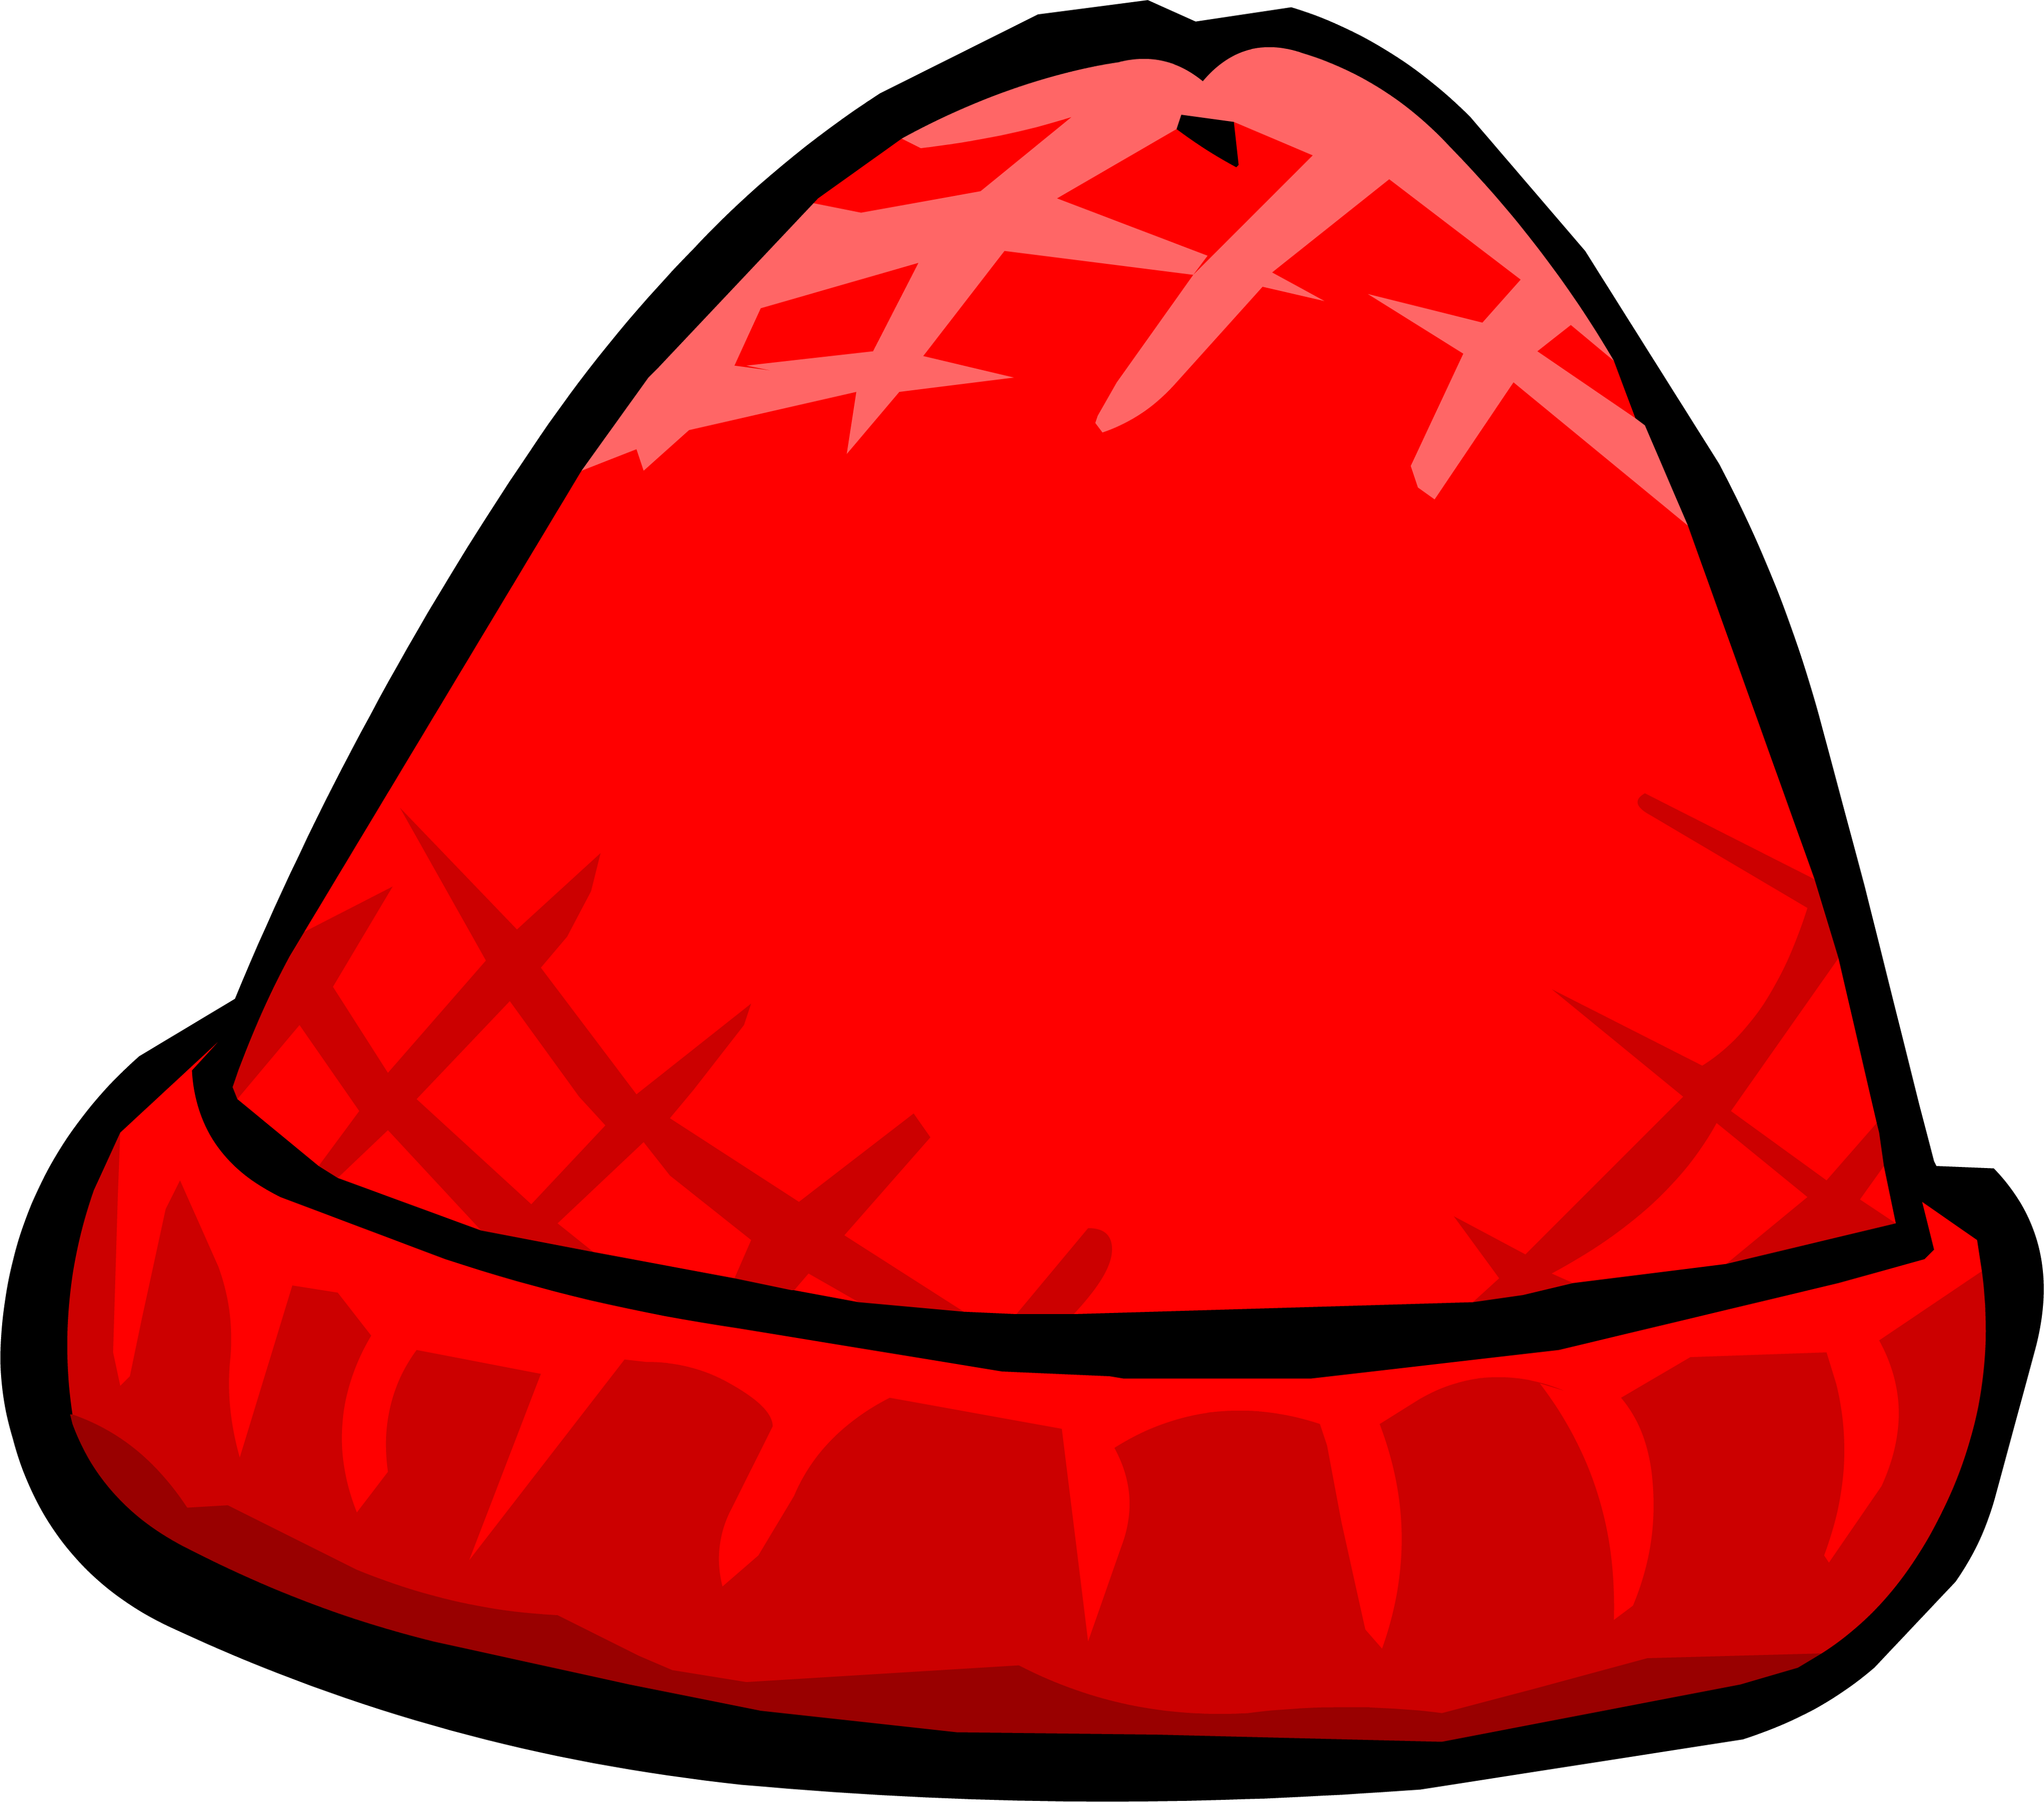 Hats clipart sailor's. Image red toque png